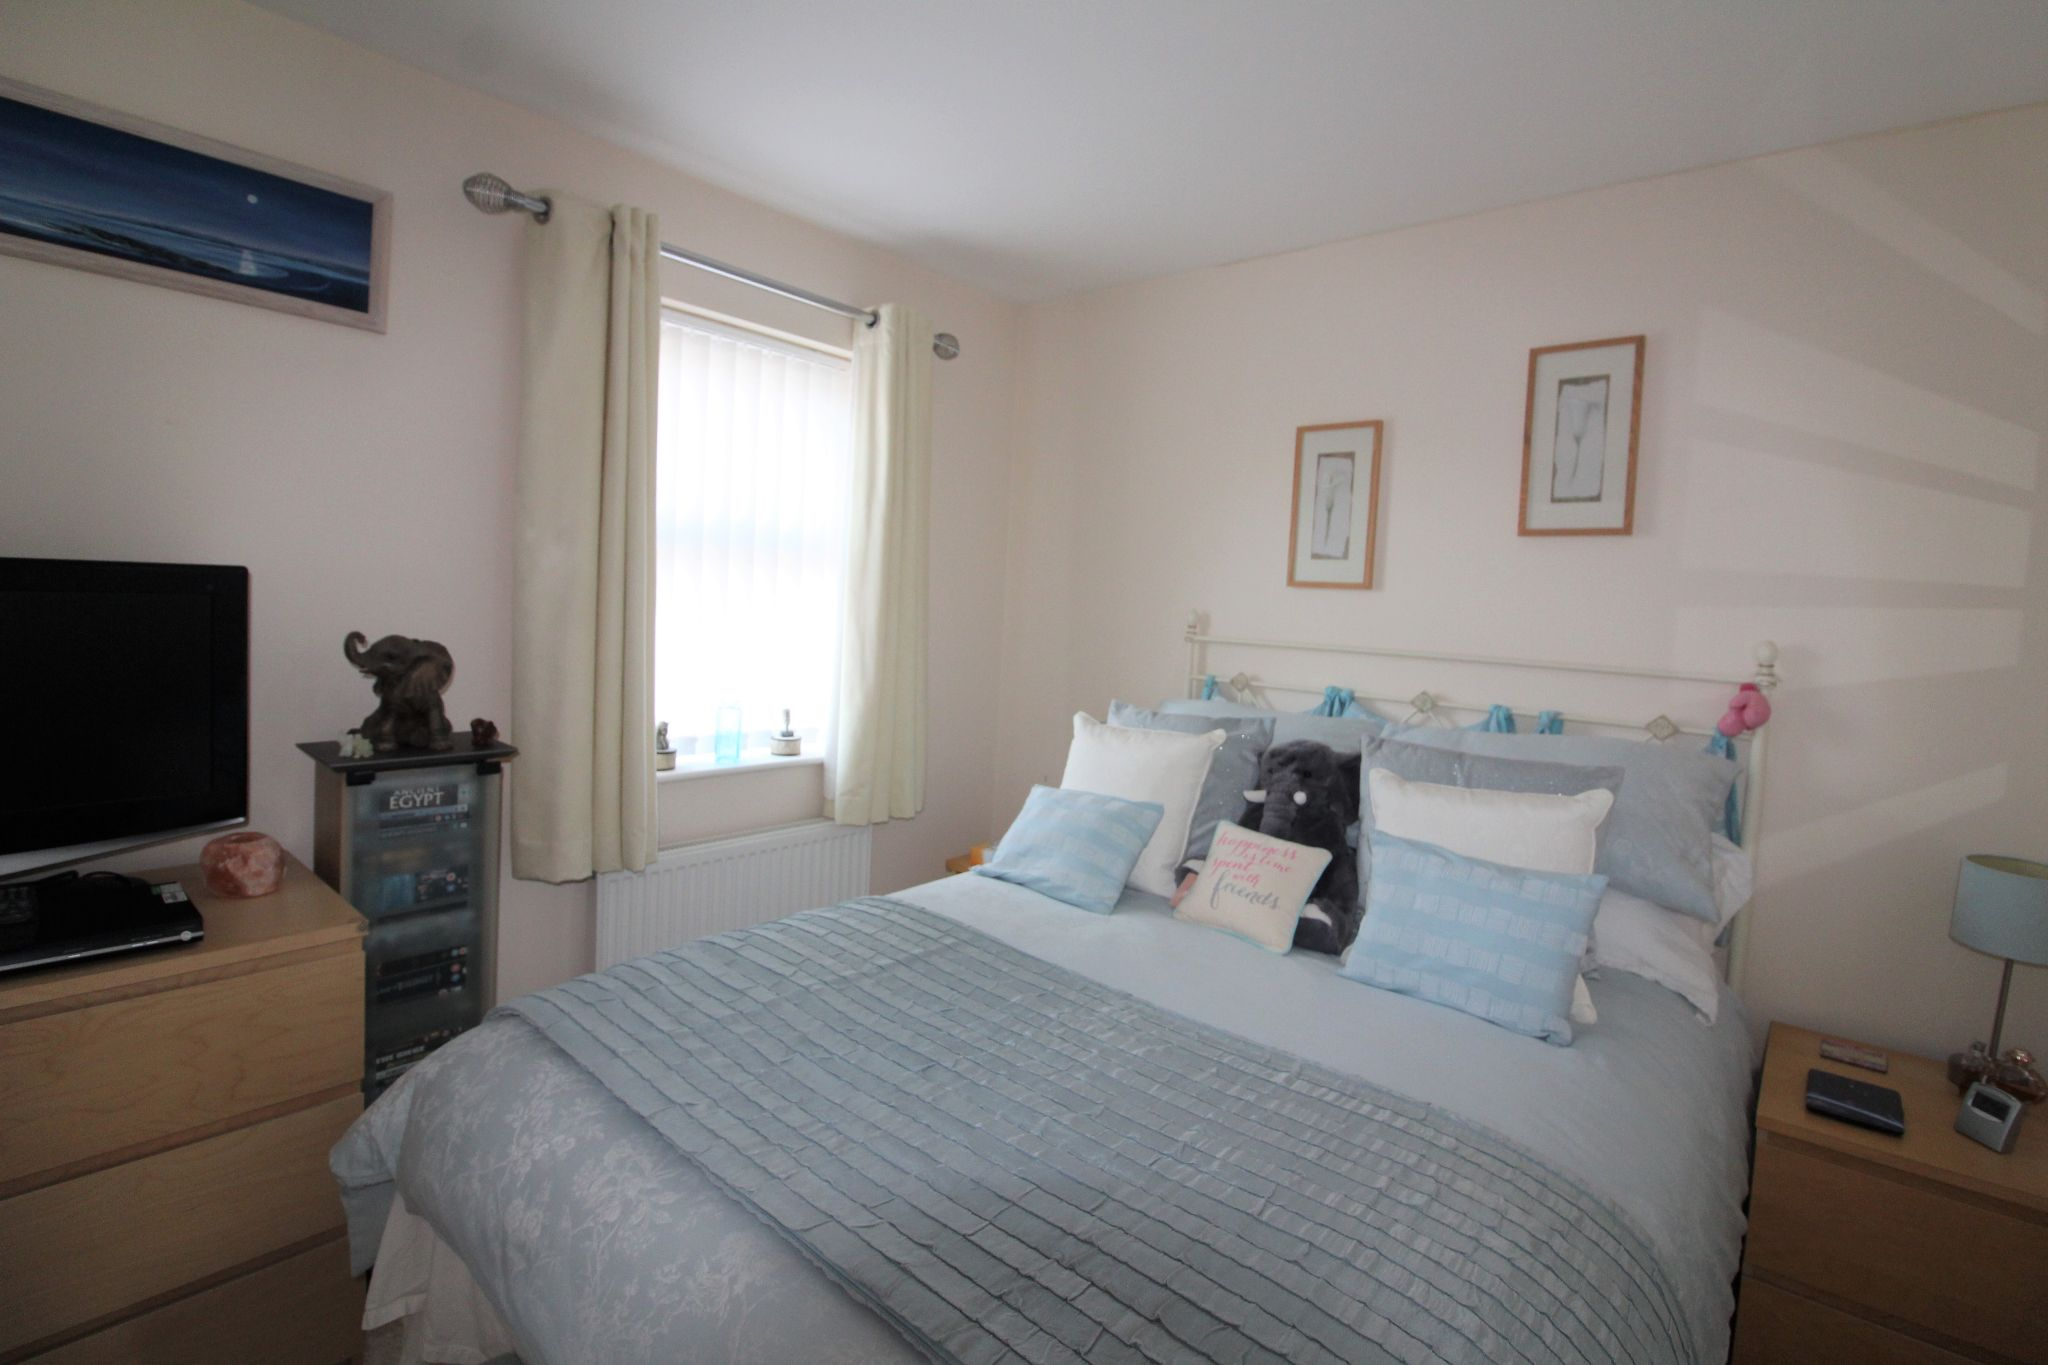 2 bedroom semi-detached house For Sale in Durham - Photograph 30.